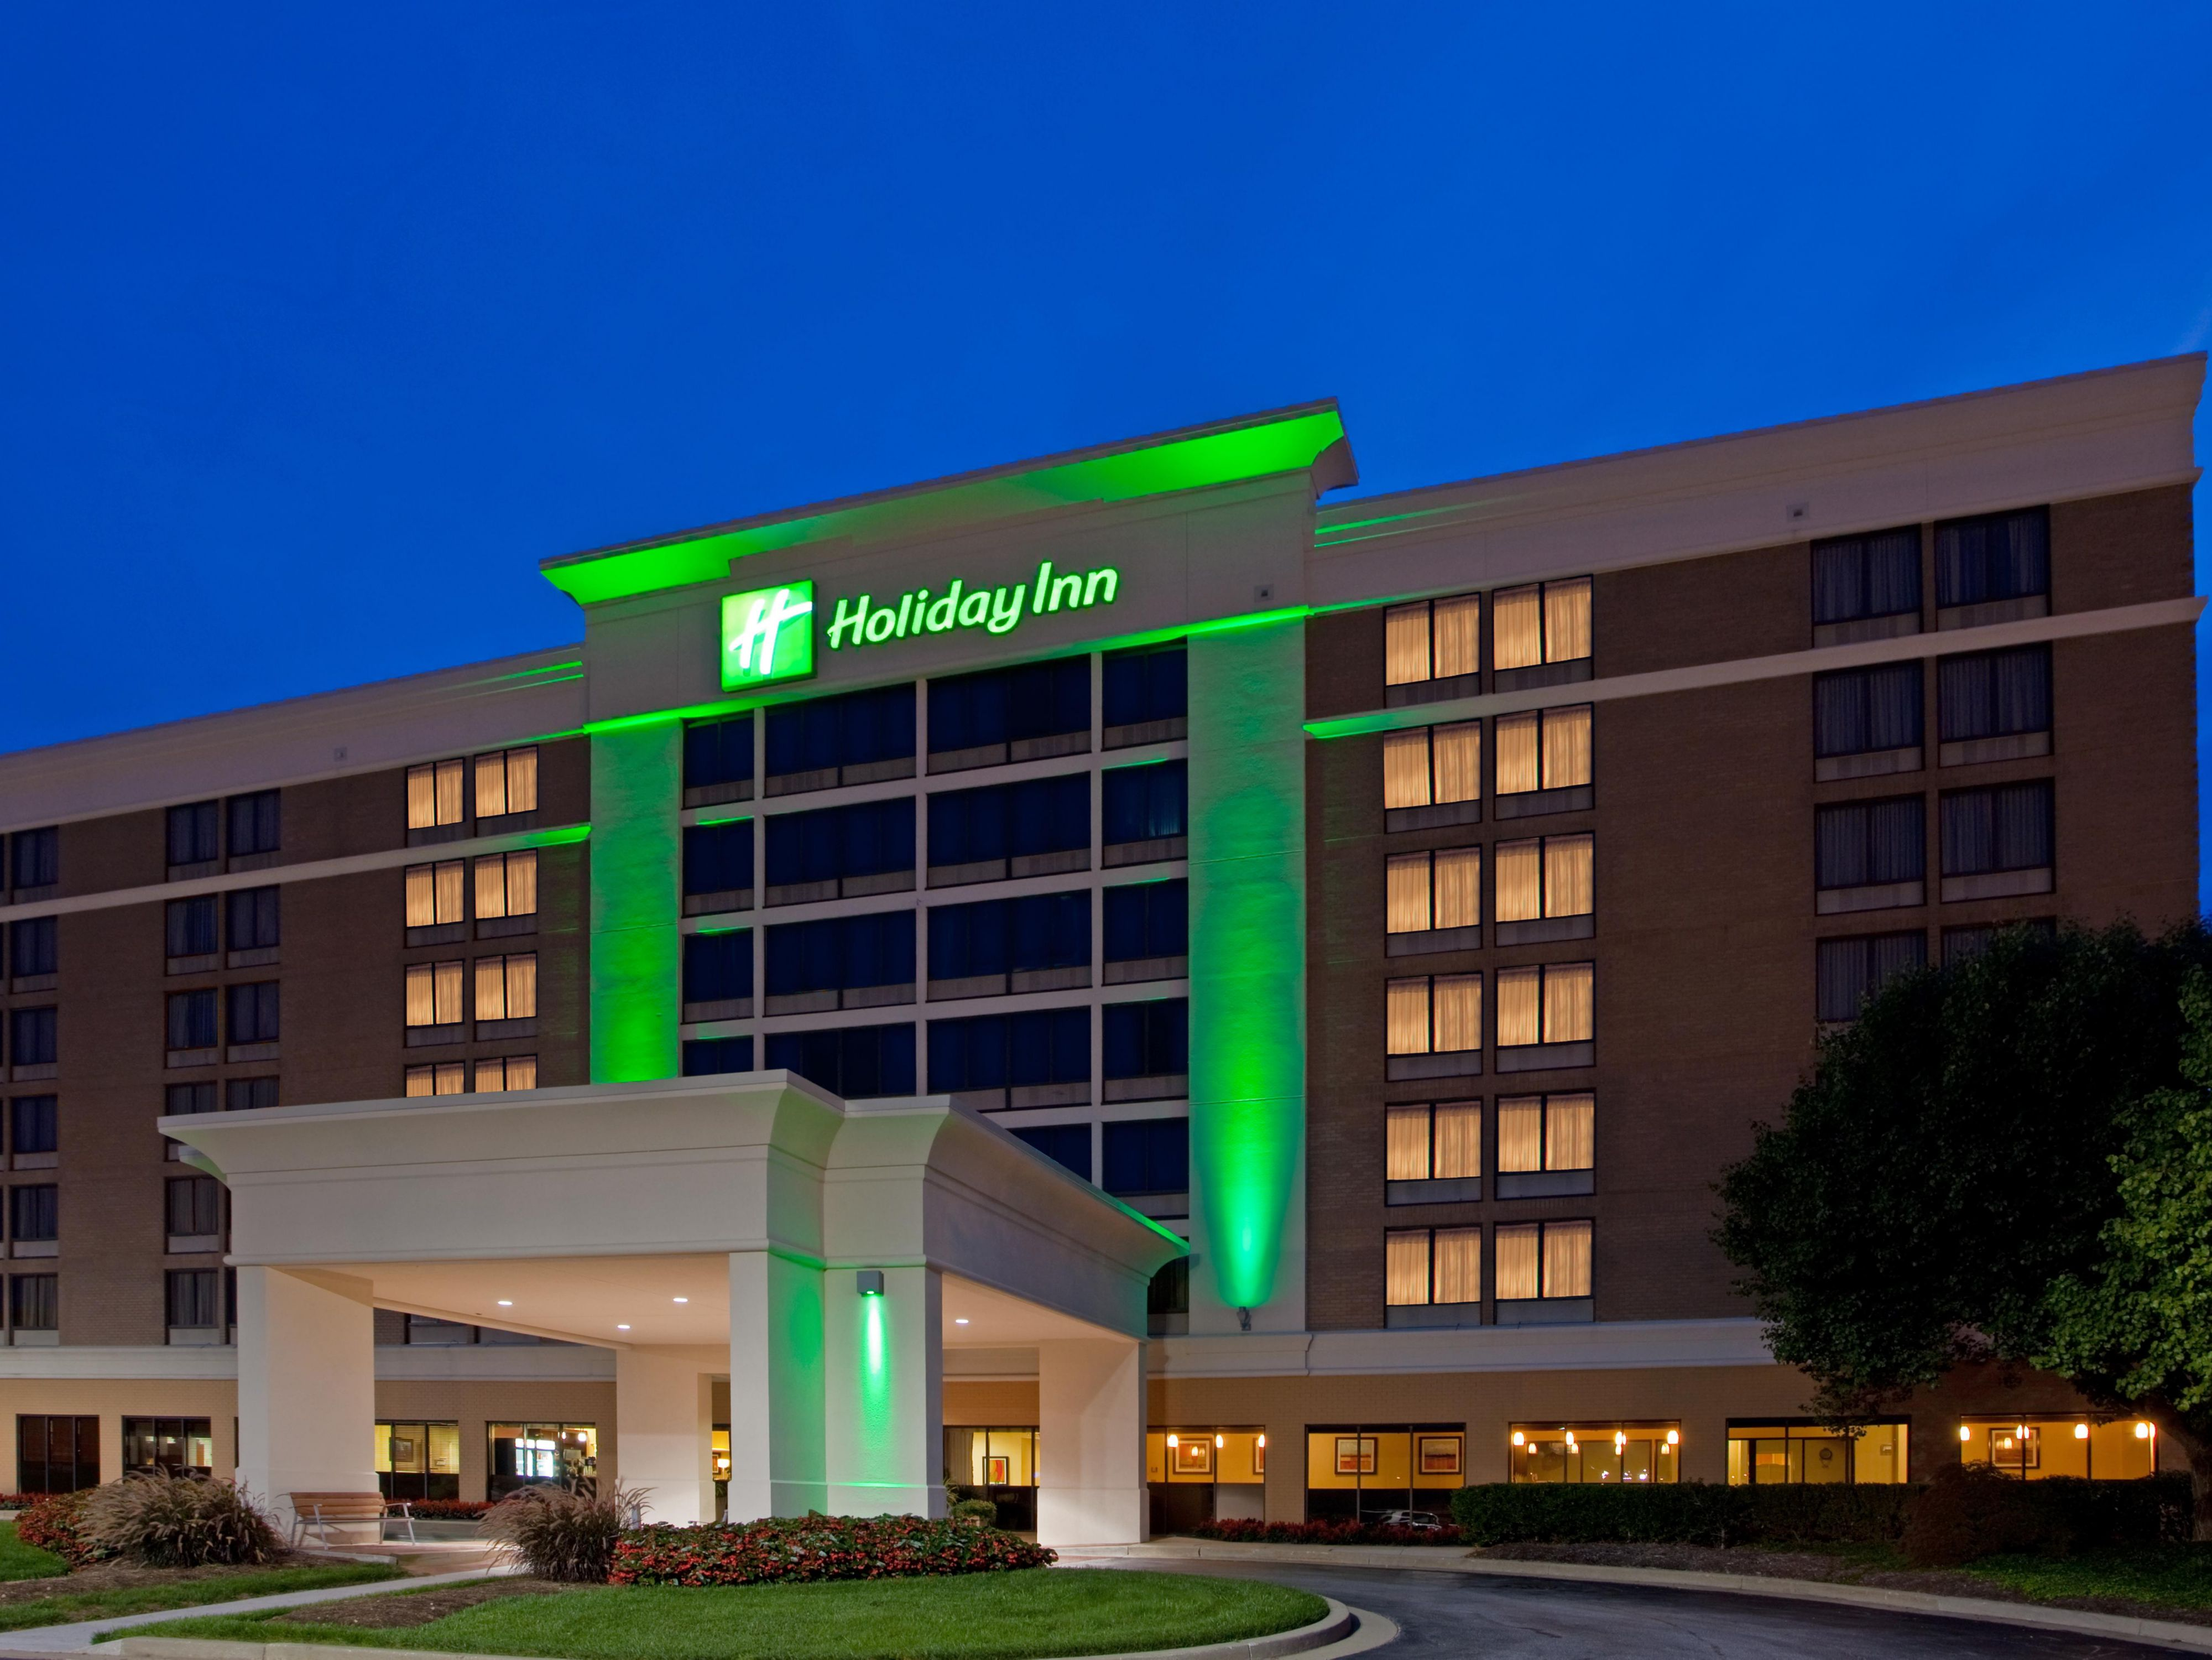 Holiday Inn Timonium Exterior